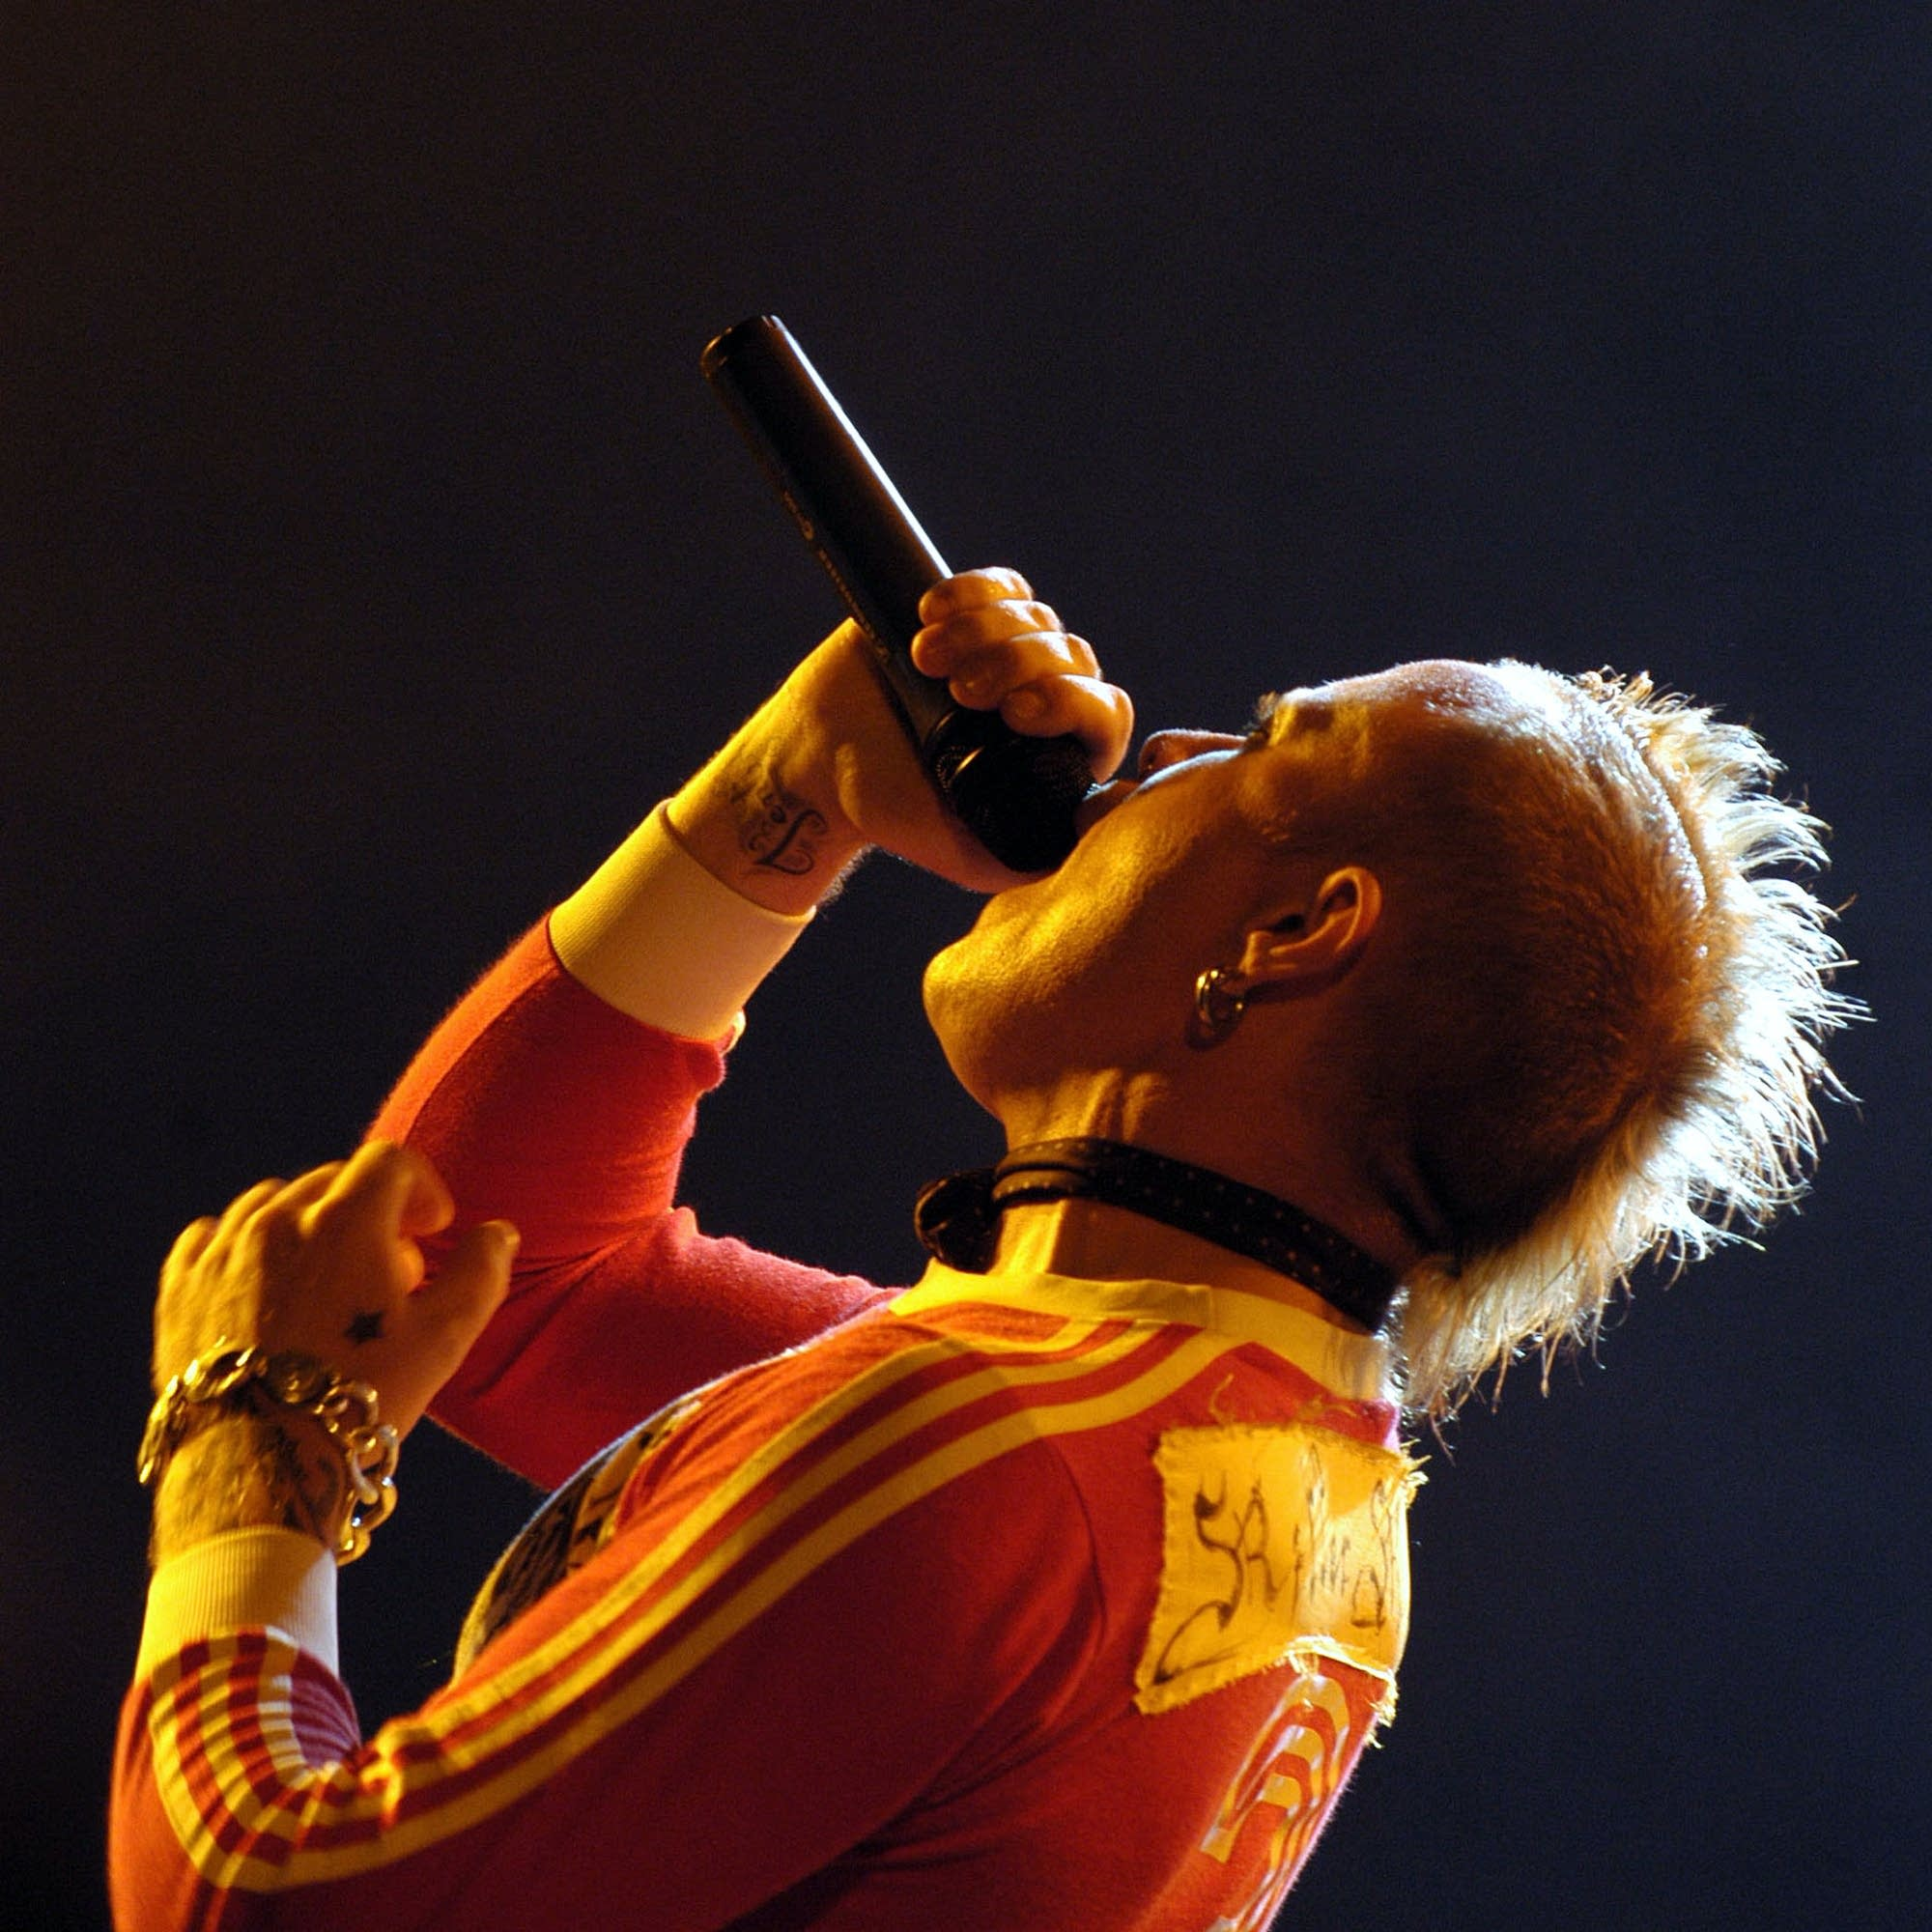 Keith Flint performs with the Prodigy in 2003.